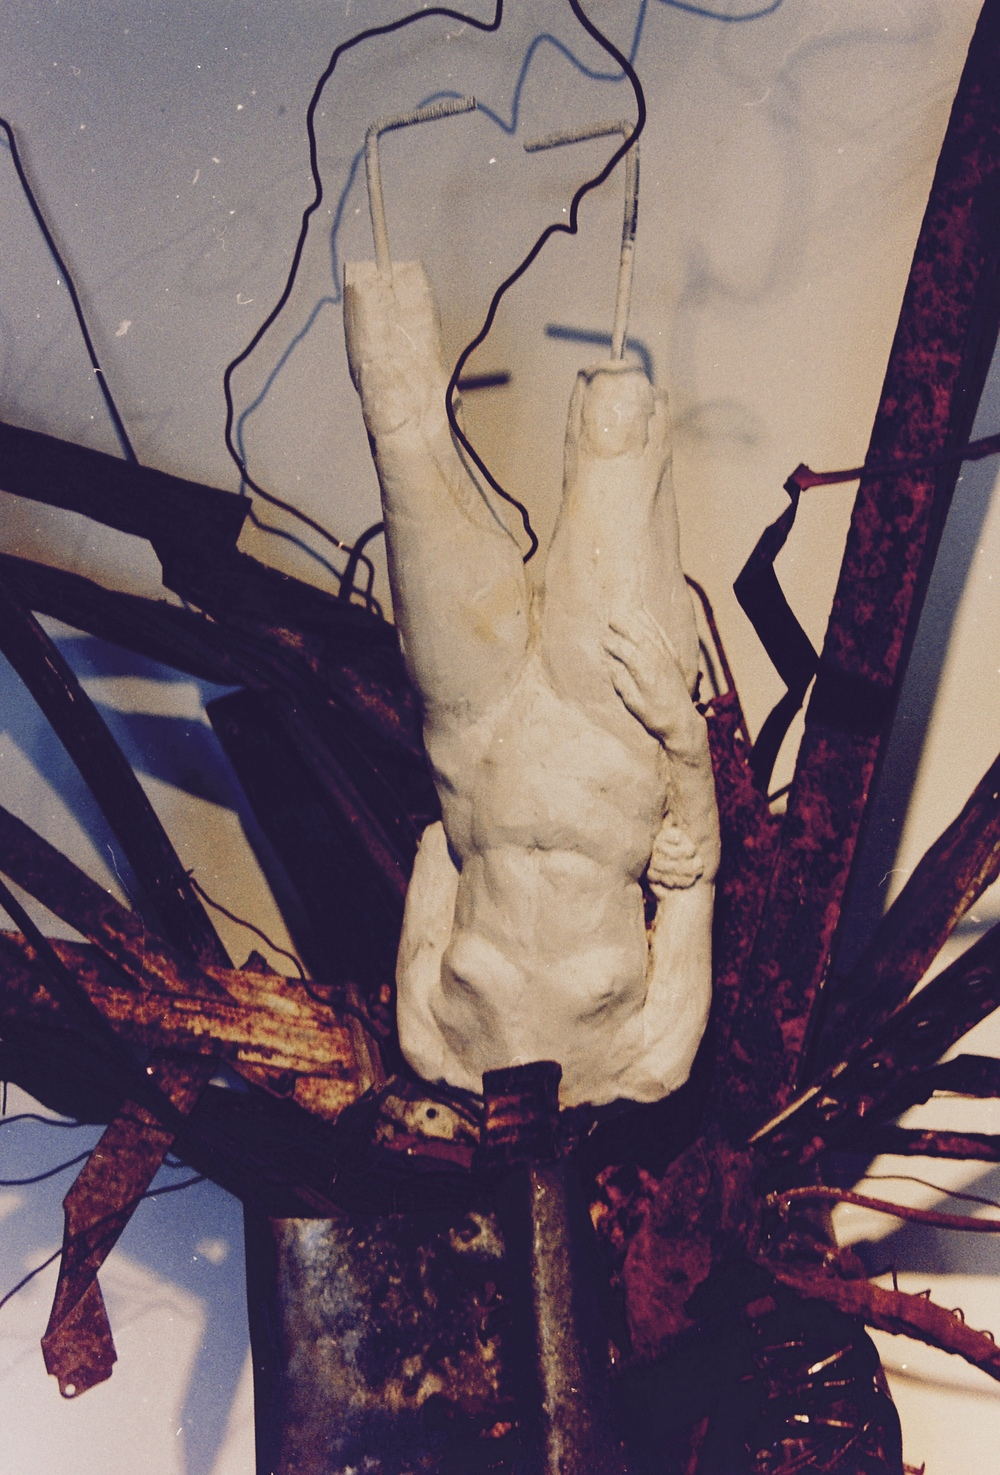 A detail from an installation,   Modern Interior ,  at Project Creo in the old pyramid pier building, St Petersburg, as part of a group show of installation art in the early 2000s